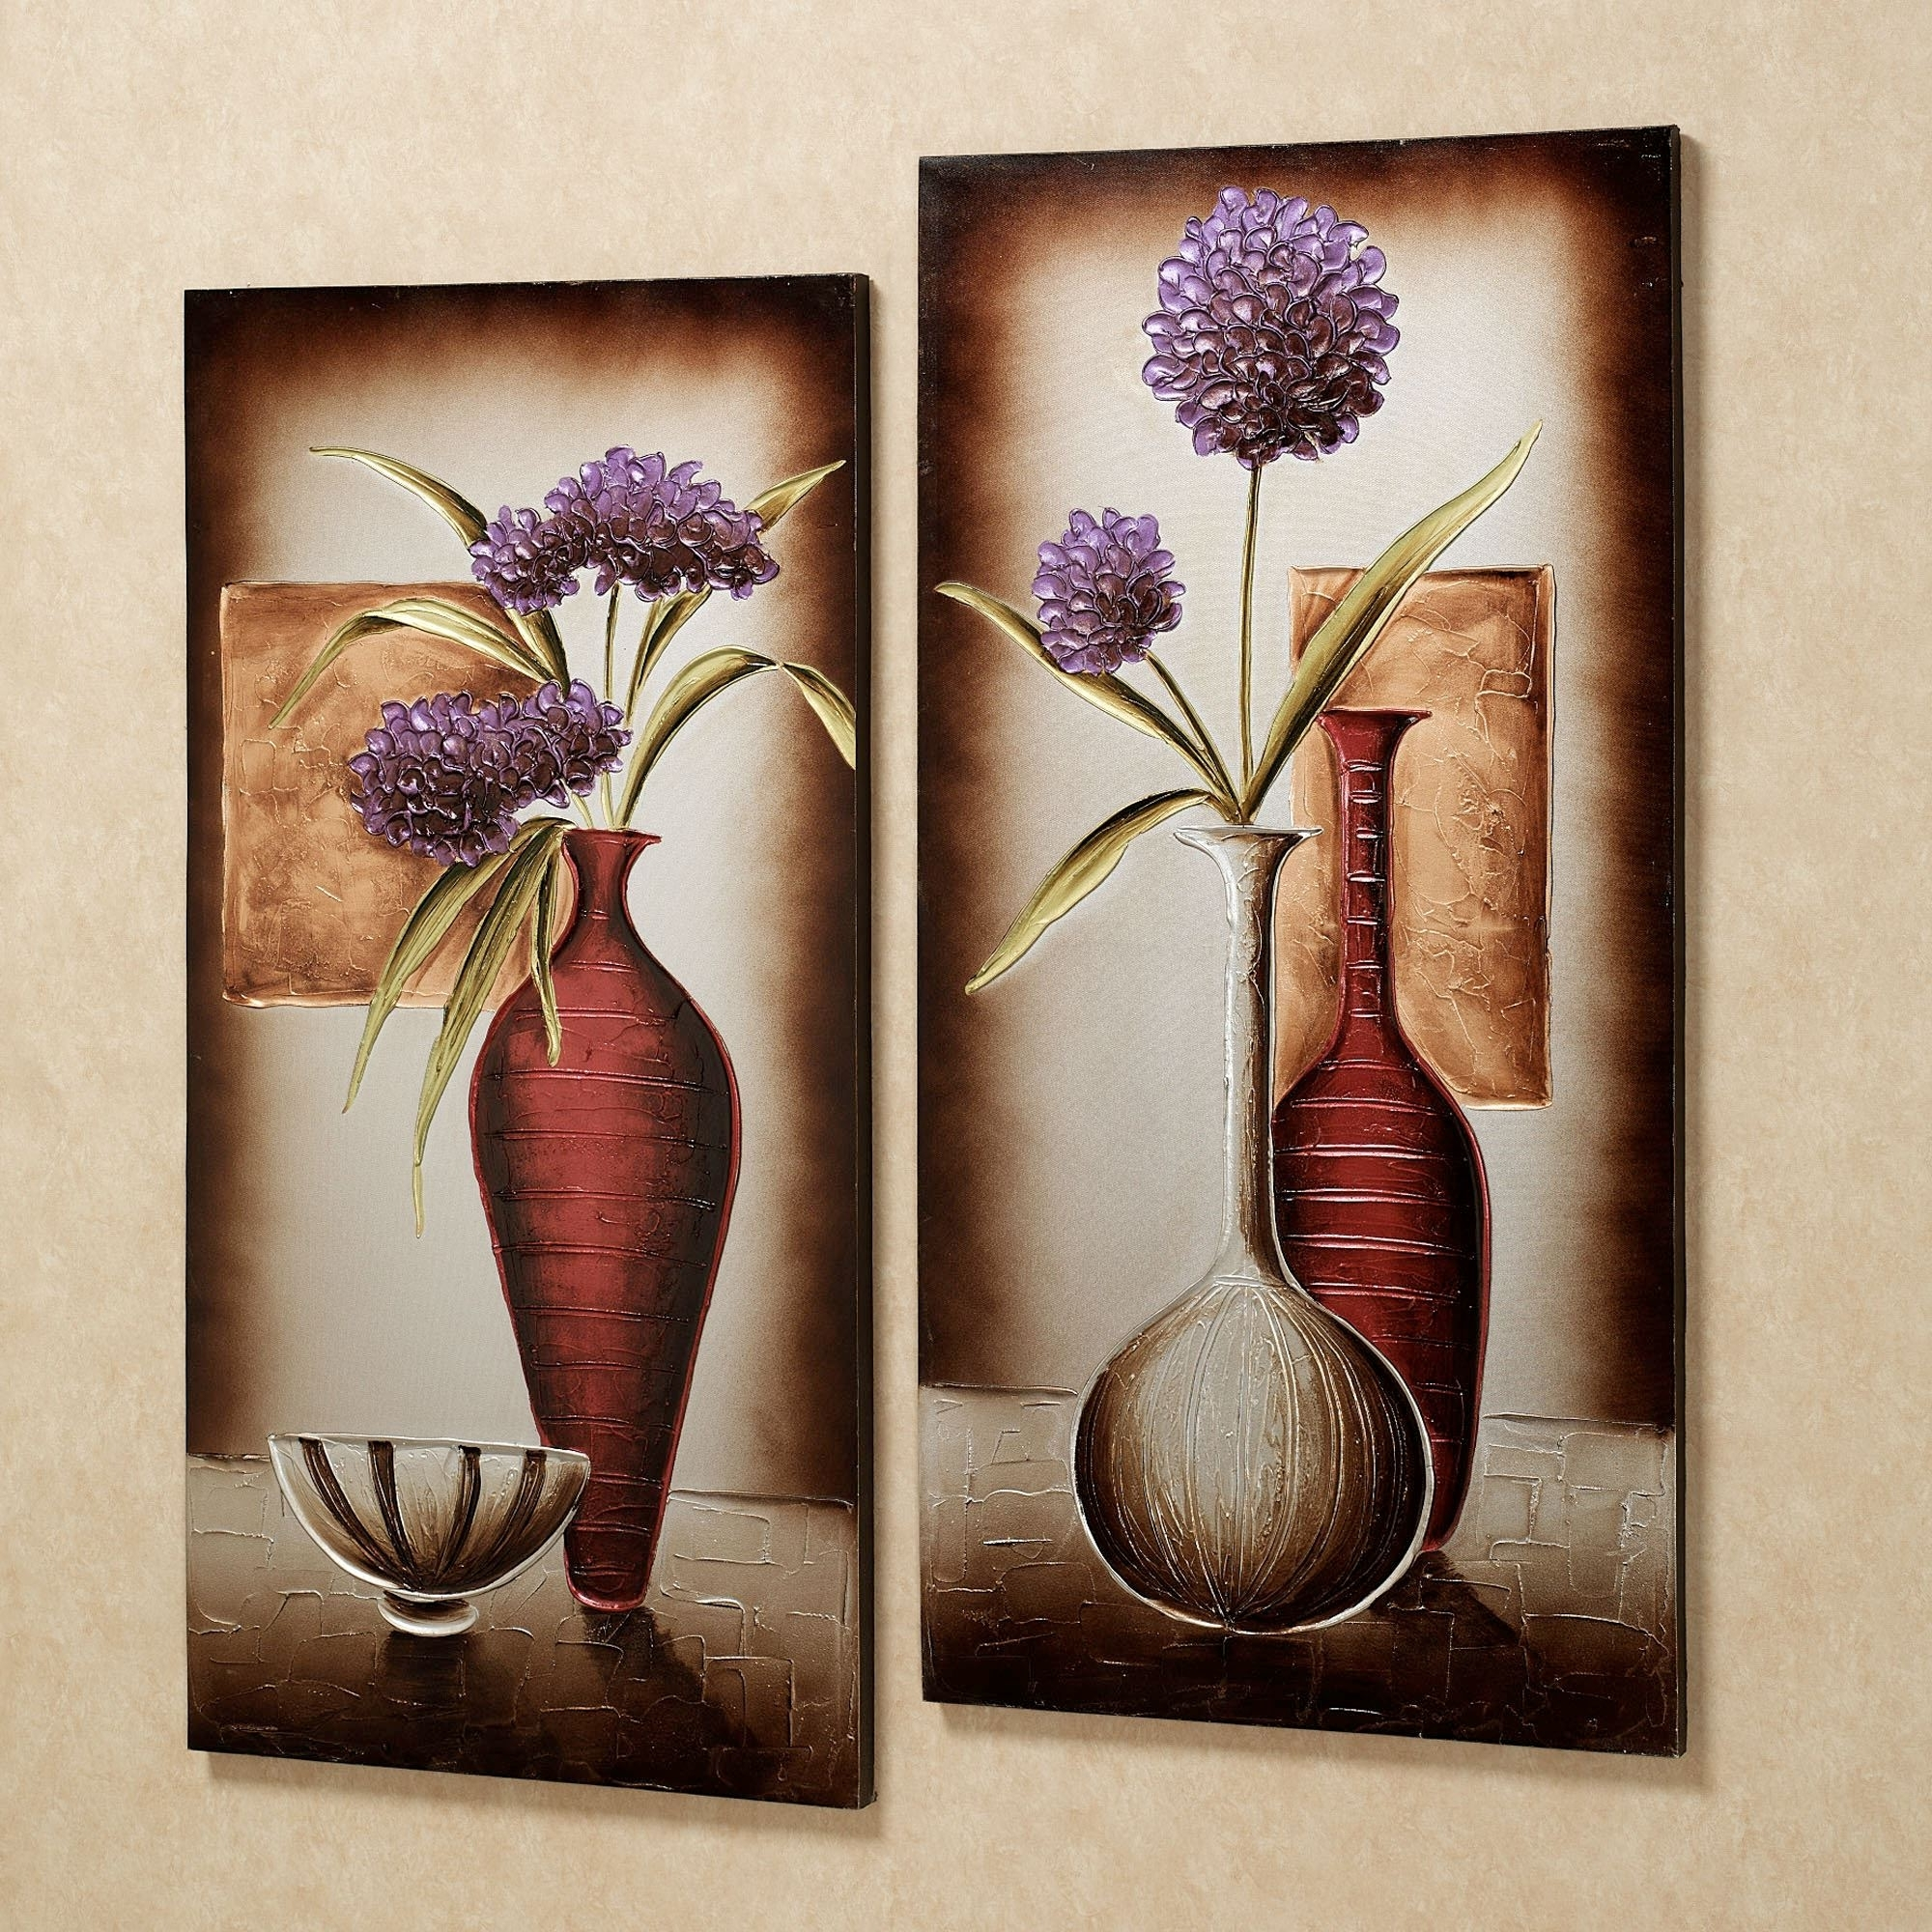 Matching Wall Art Pertaining To Trendy Wall Art Designs: Wall Art Sets Floral Tranquility Canvas Wall Art (View 6 of 15)